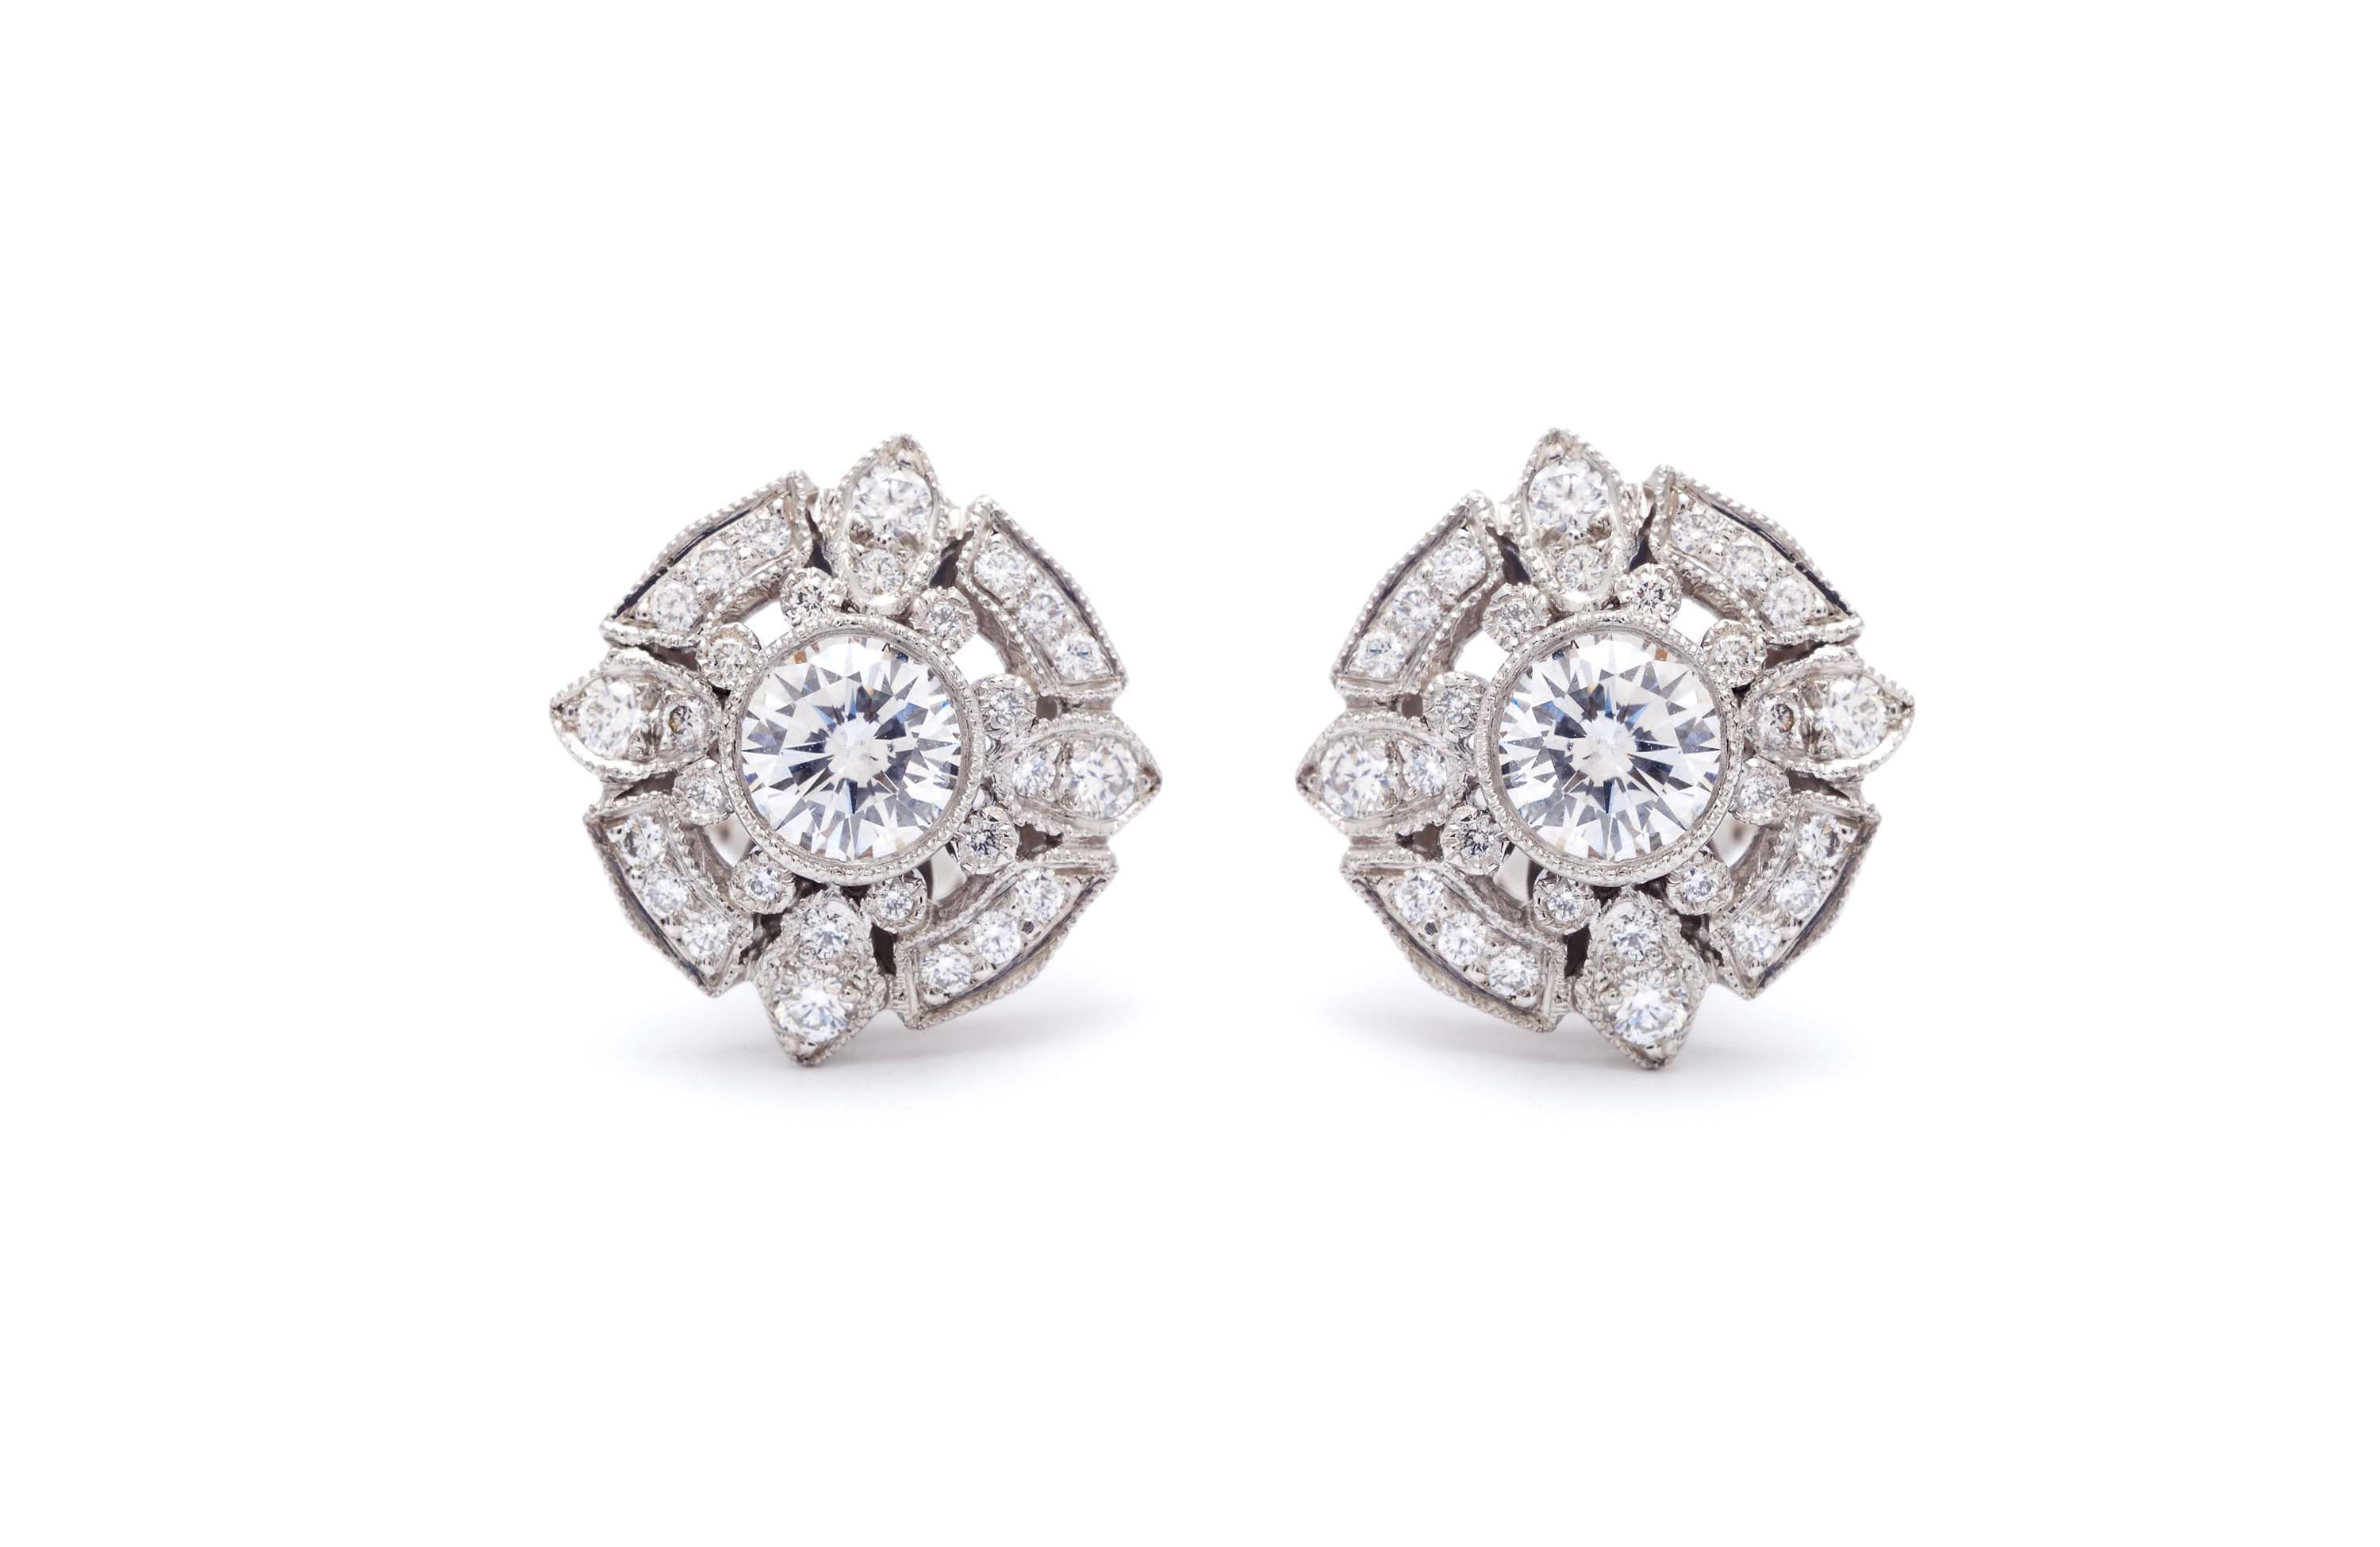 white sold weighs the stud diamond of img a is vintage pair earrings three grams pearl this in antique gold triangle